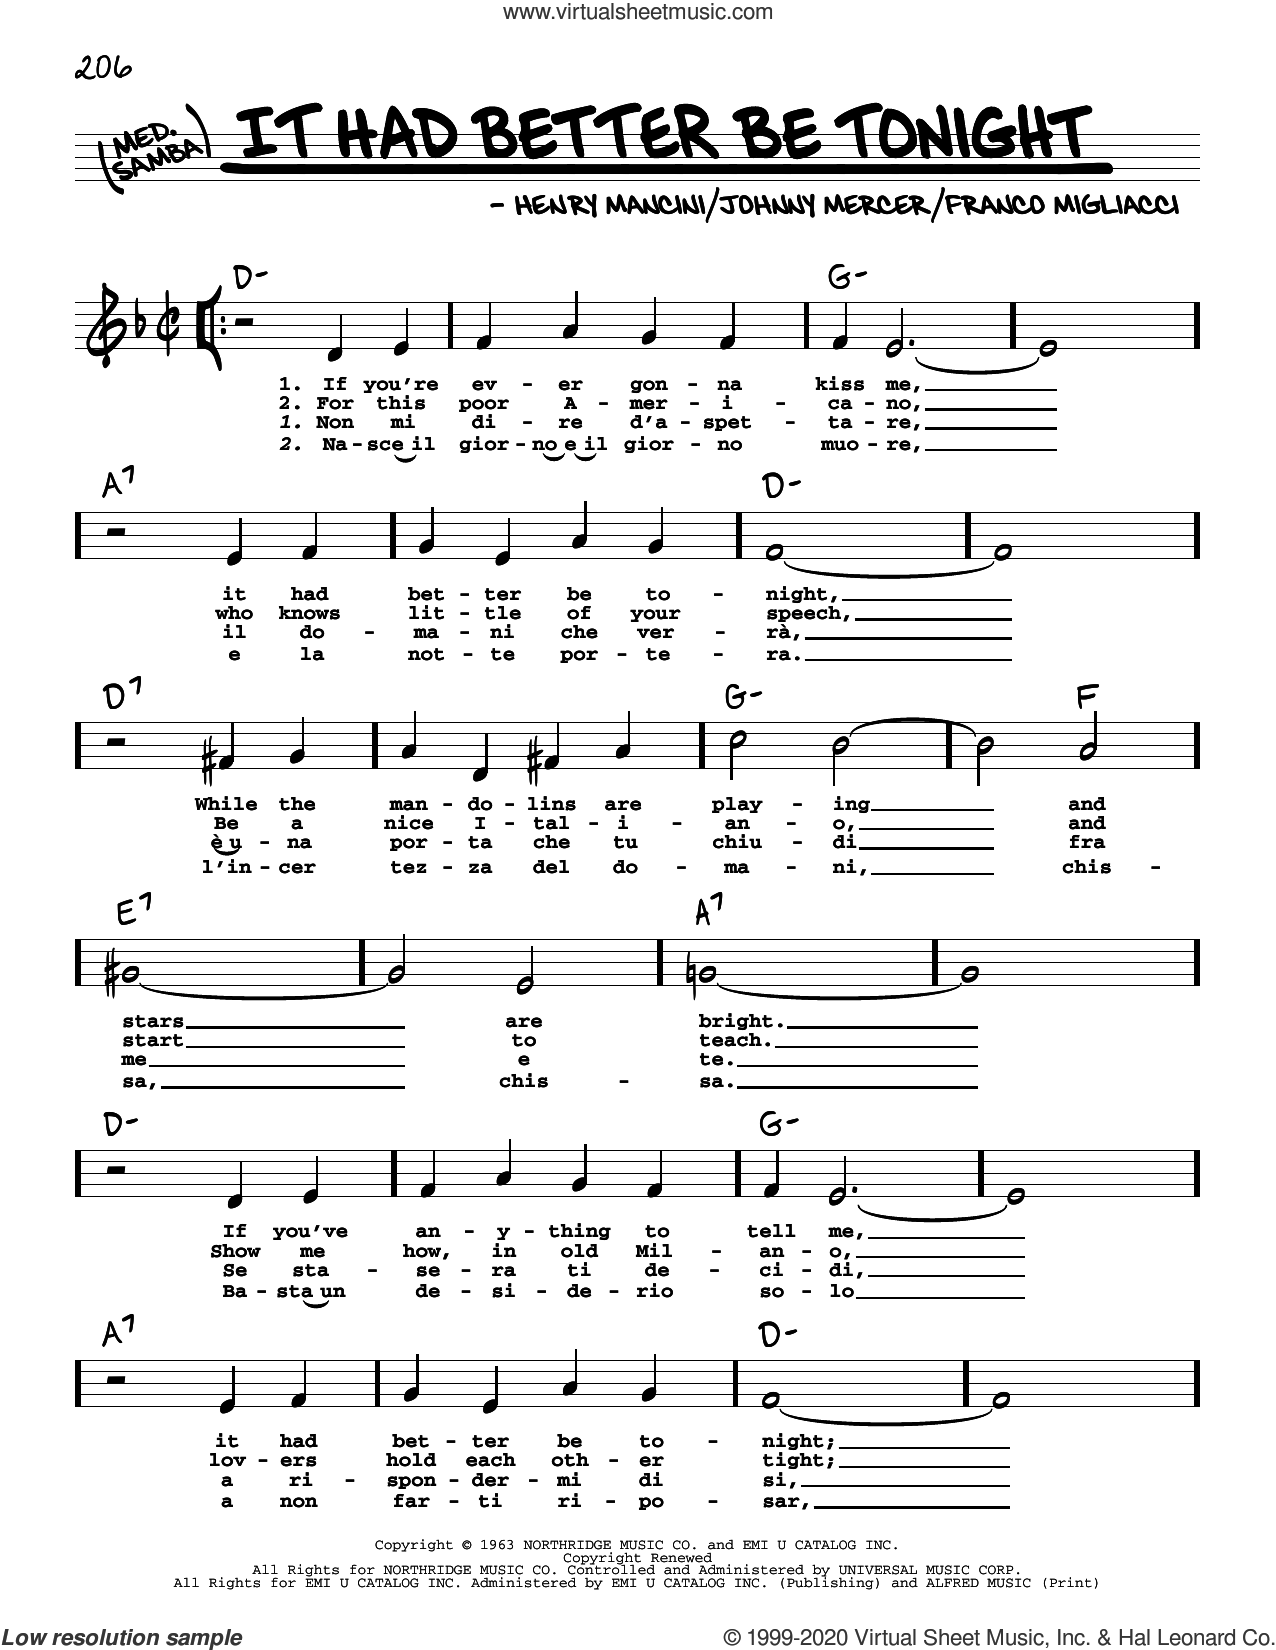 It Had Better Be Tonight (High Voice) sheet music for voice and other instruments (high voice) by Johnny Mercer, Franco Migliacci and Henry Mancini, intermediate skill level